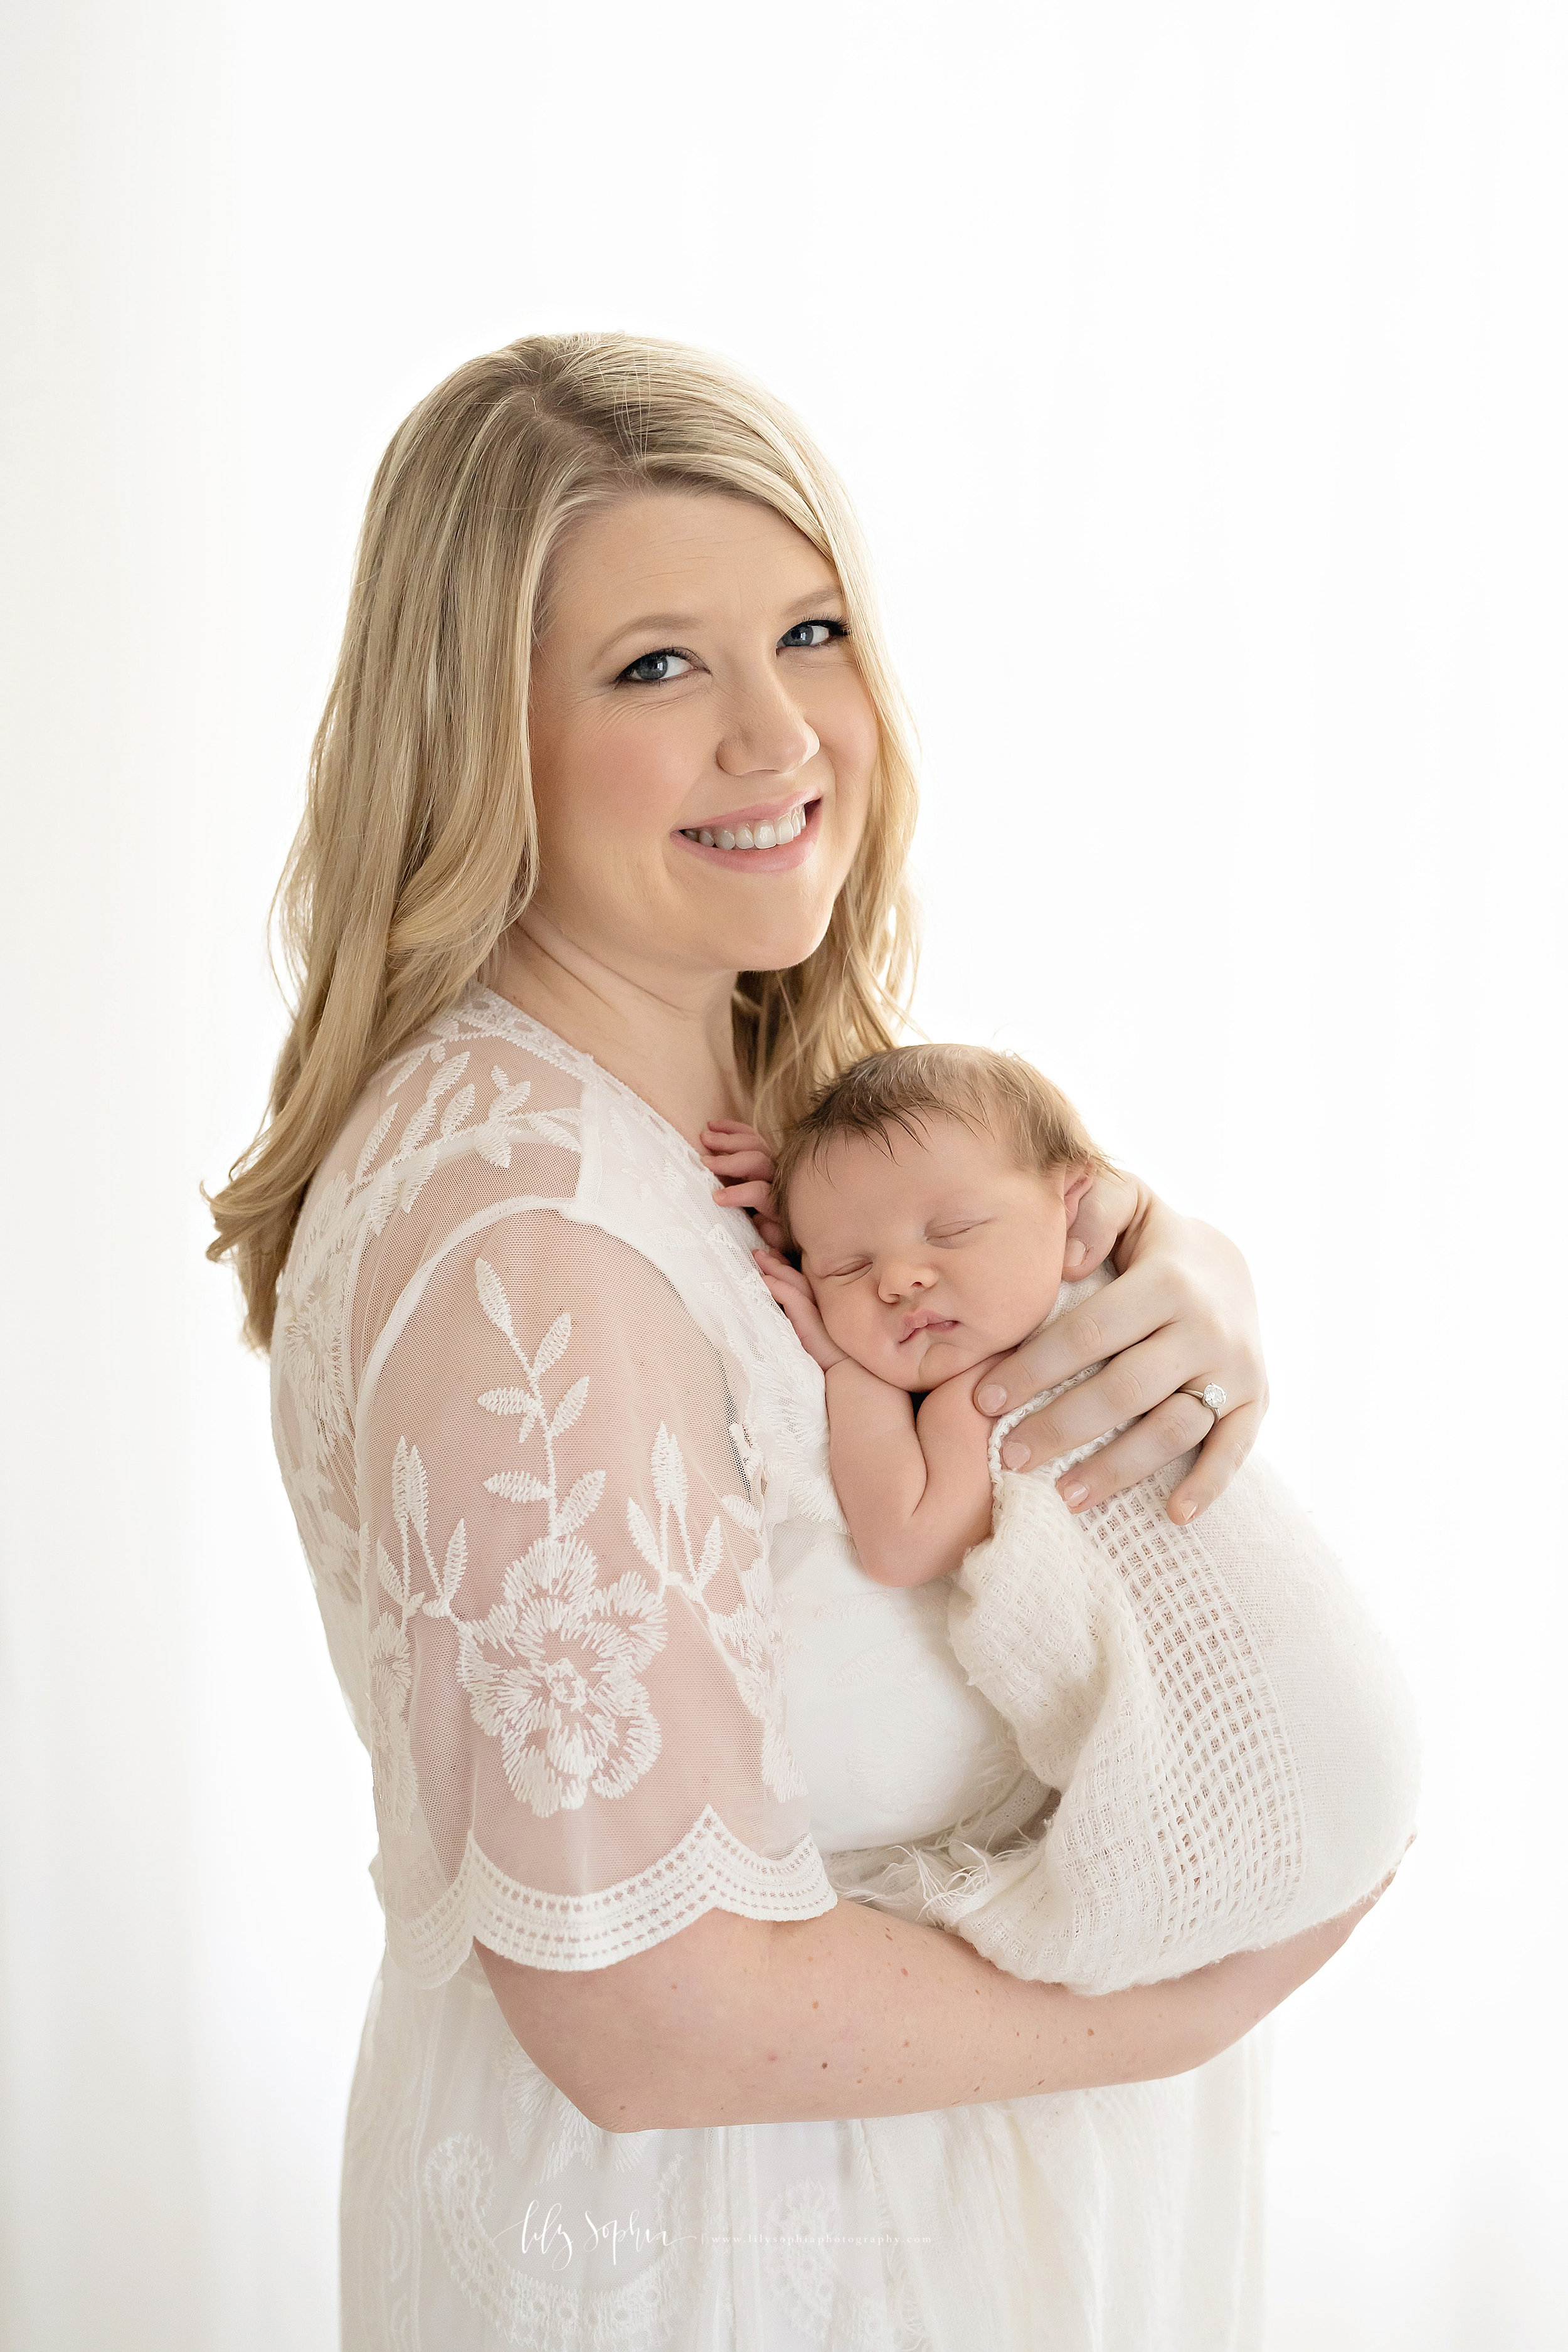 Image of a mom holding her newborn son while standing in a studio in Atlanta. She is smiling as she looks over her right shoulder with her blonde hair flowing behind her. The sleeping  infant is lying against her chest with his hands under his head. Mom has her left hand on the infant's back and her right hand under his bottom.